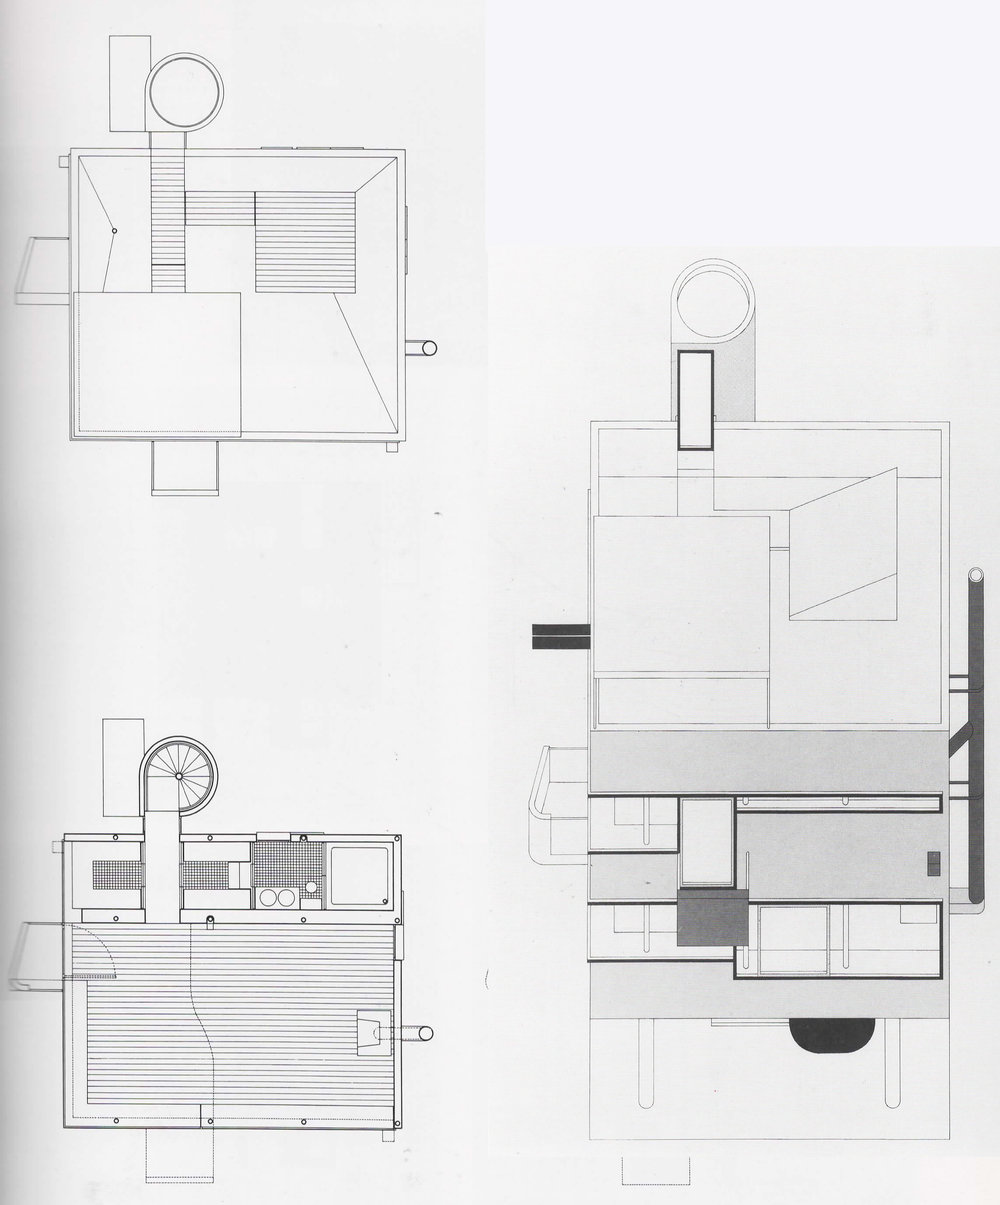 House by John Hejduk.